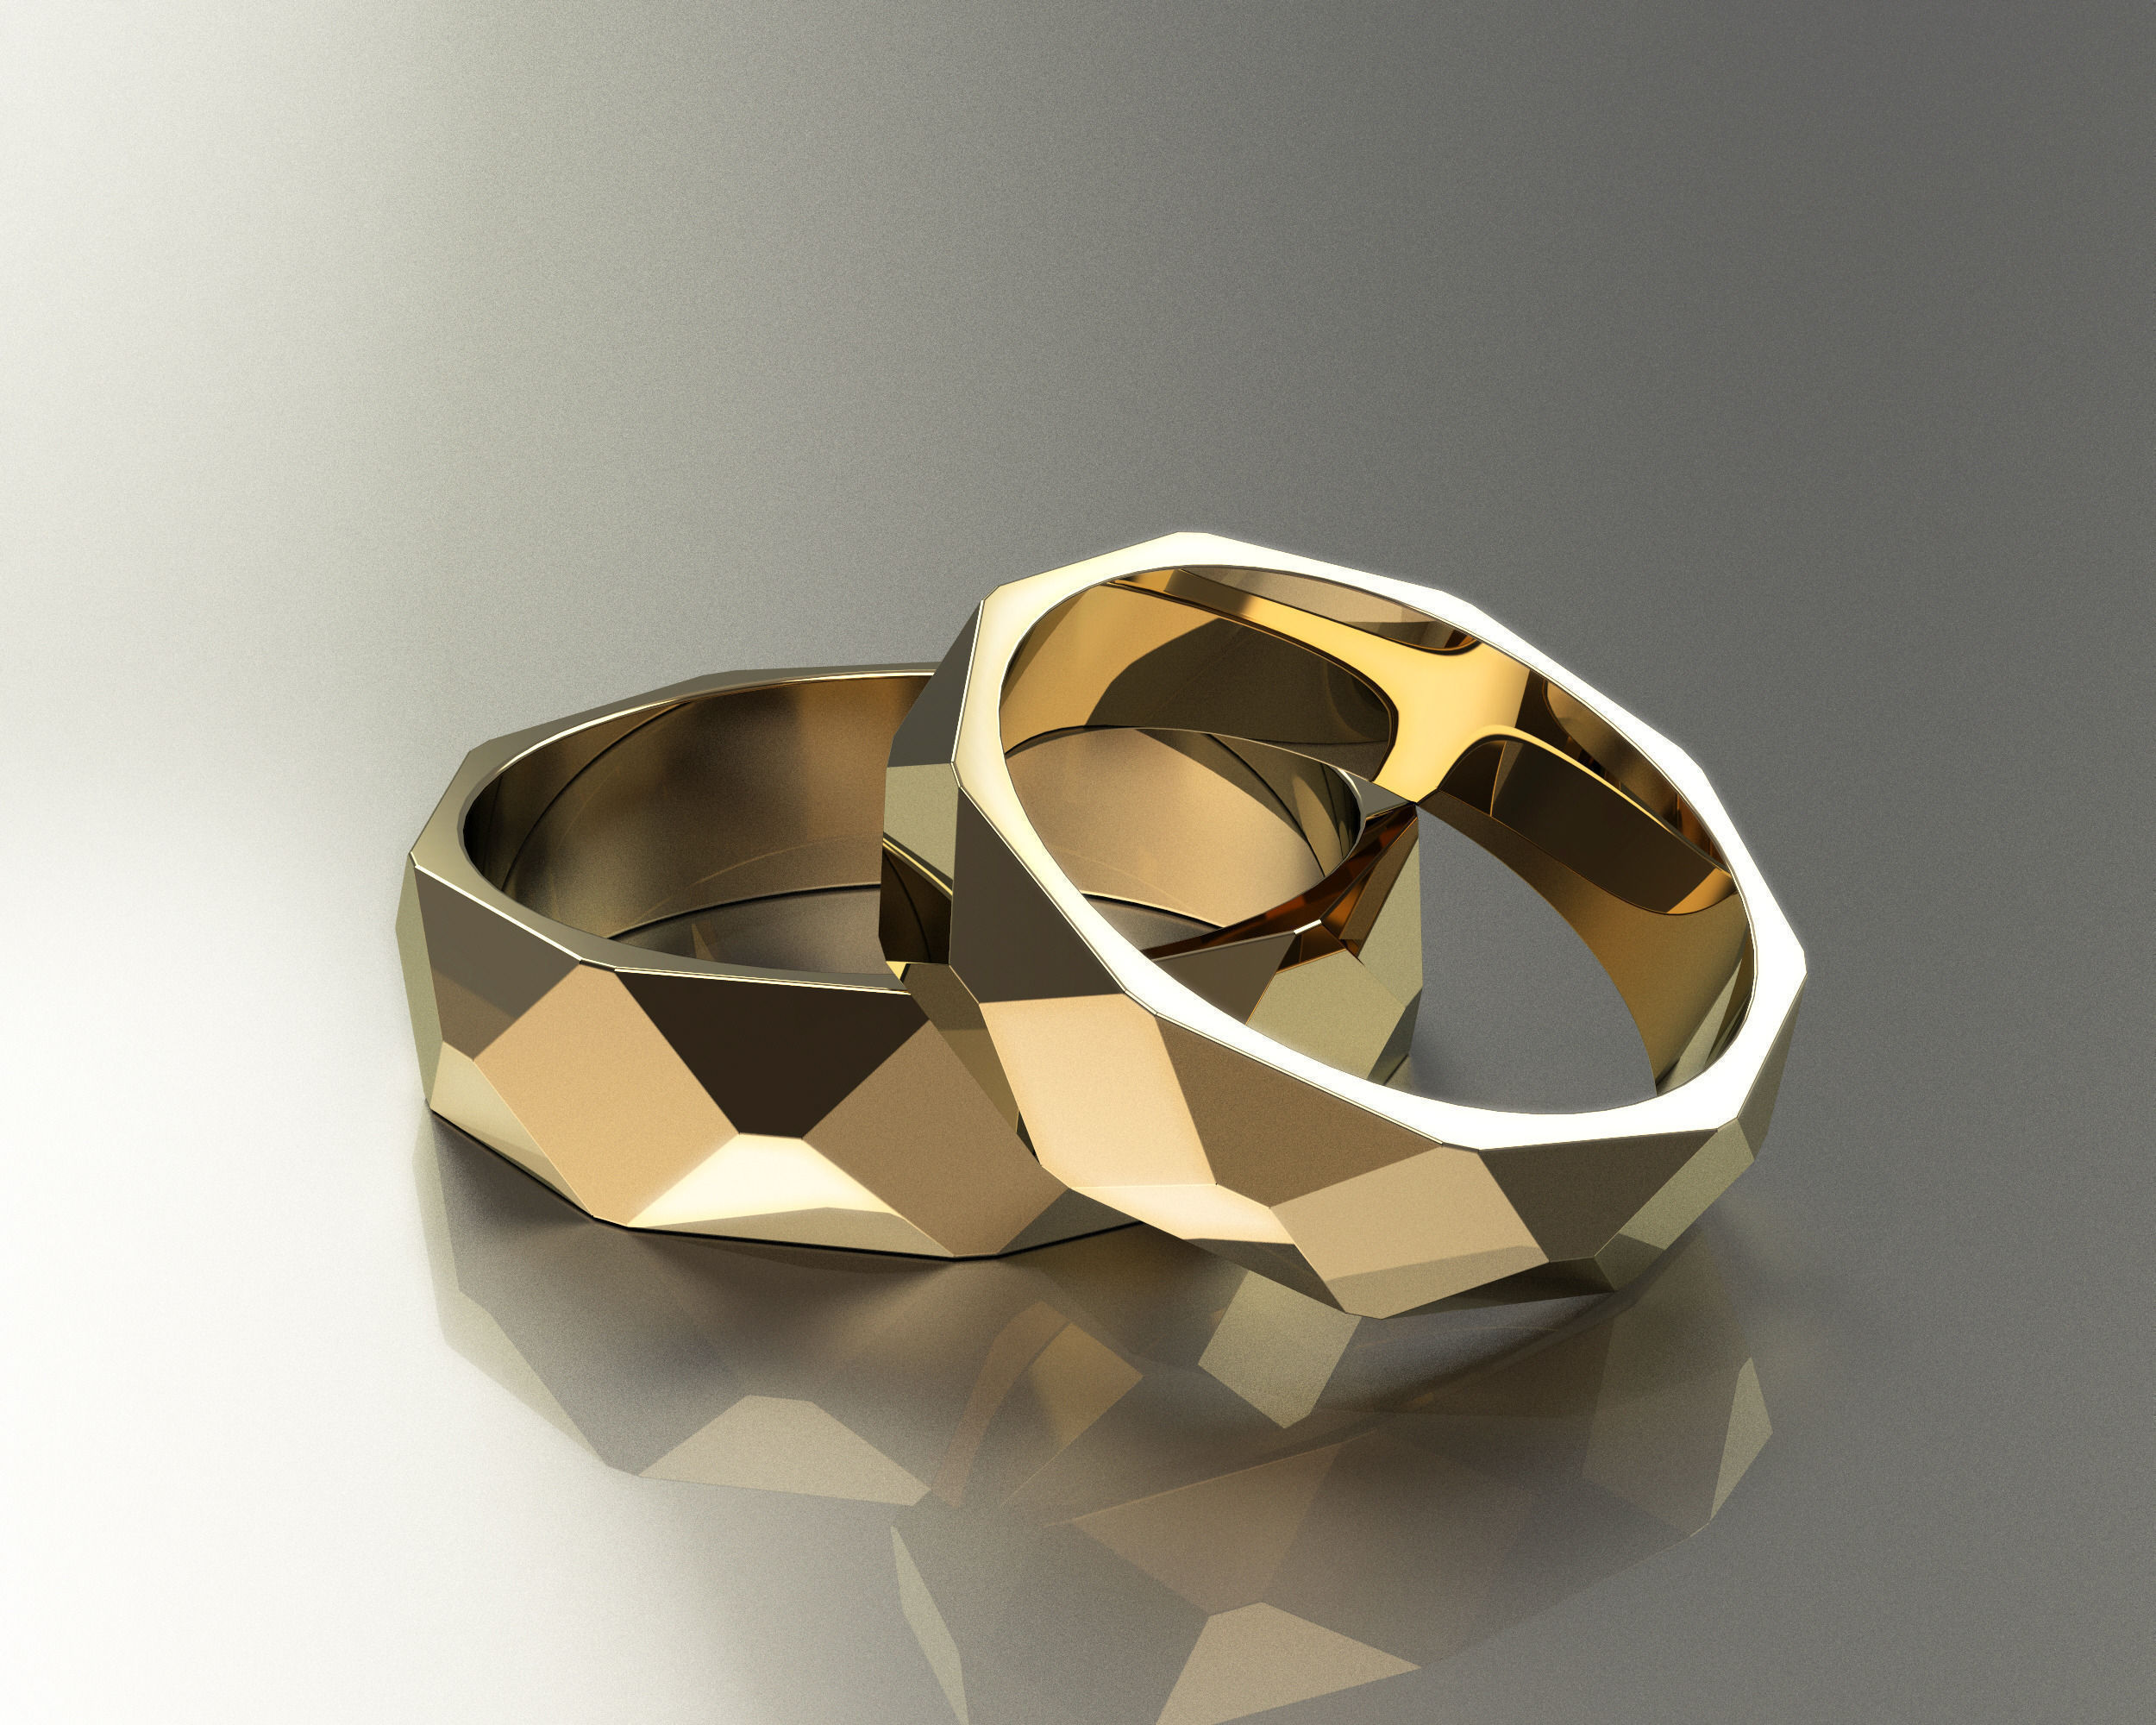 models jewelry obj printed print ring mtl cgtrader stl printable rings model sakura wedding